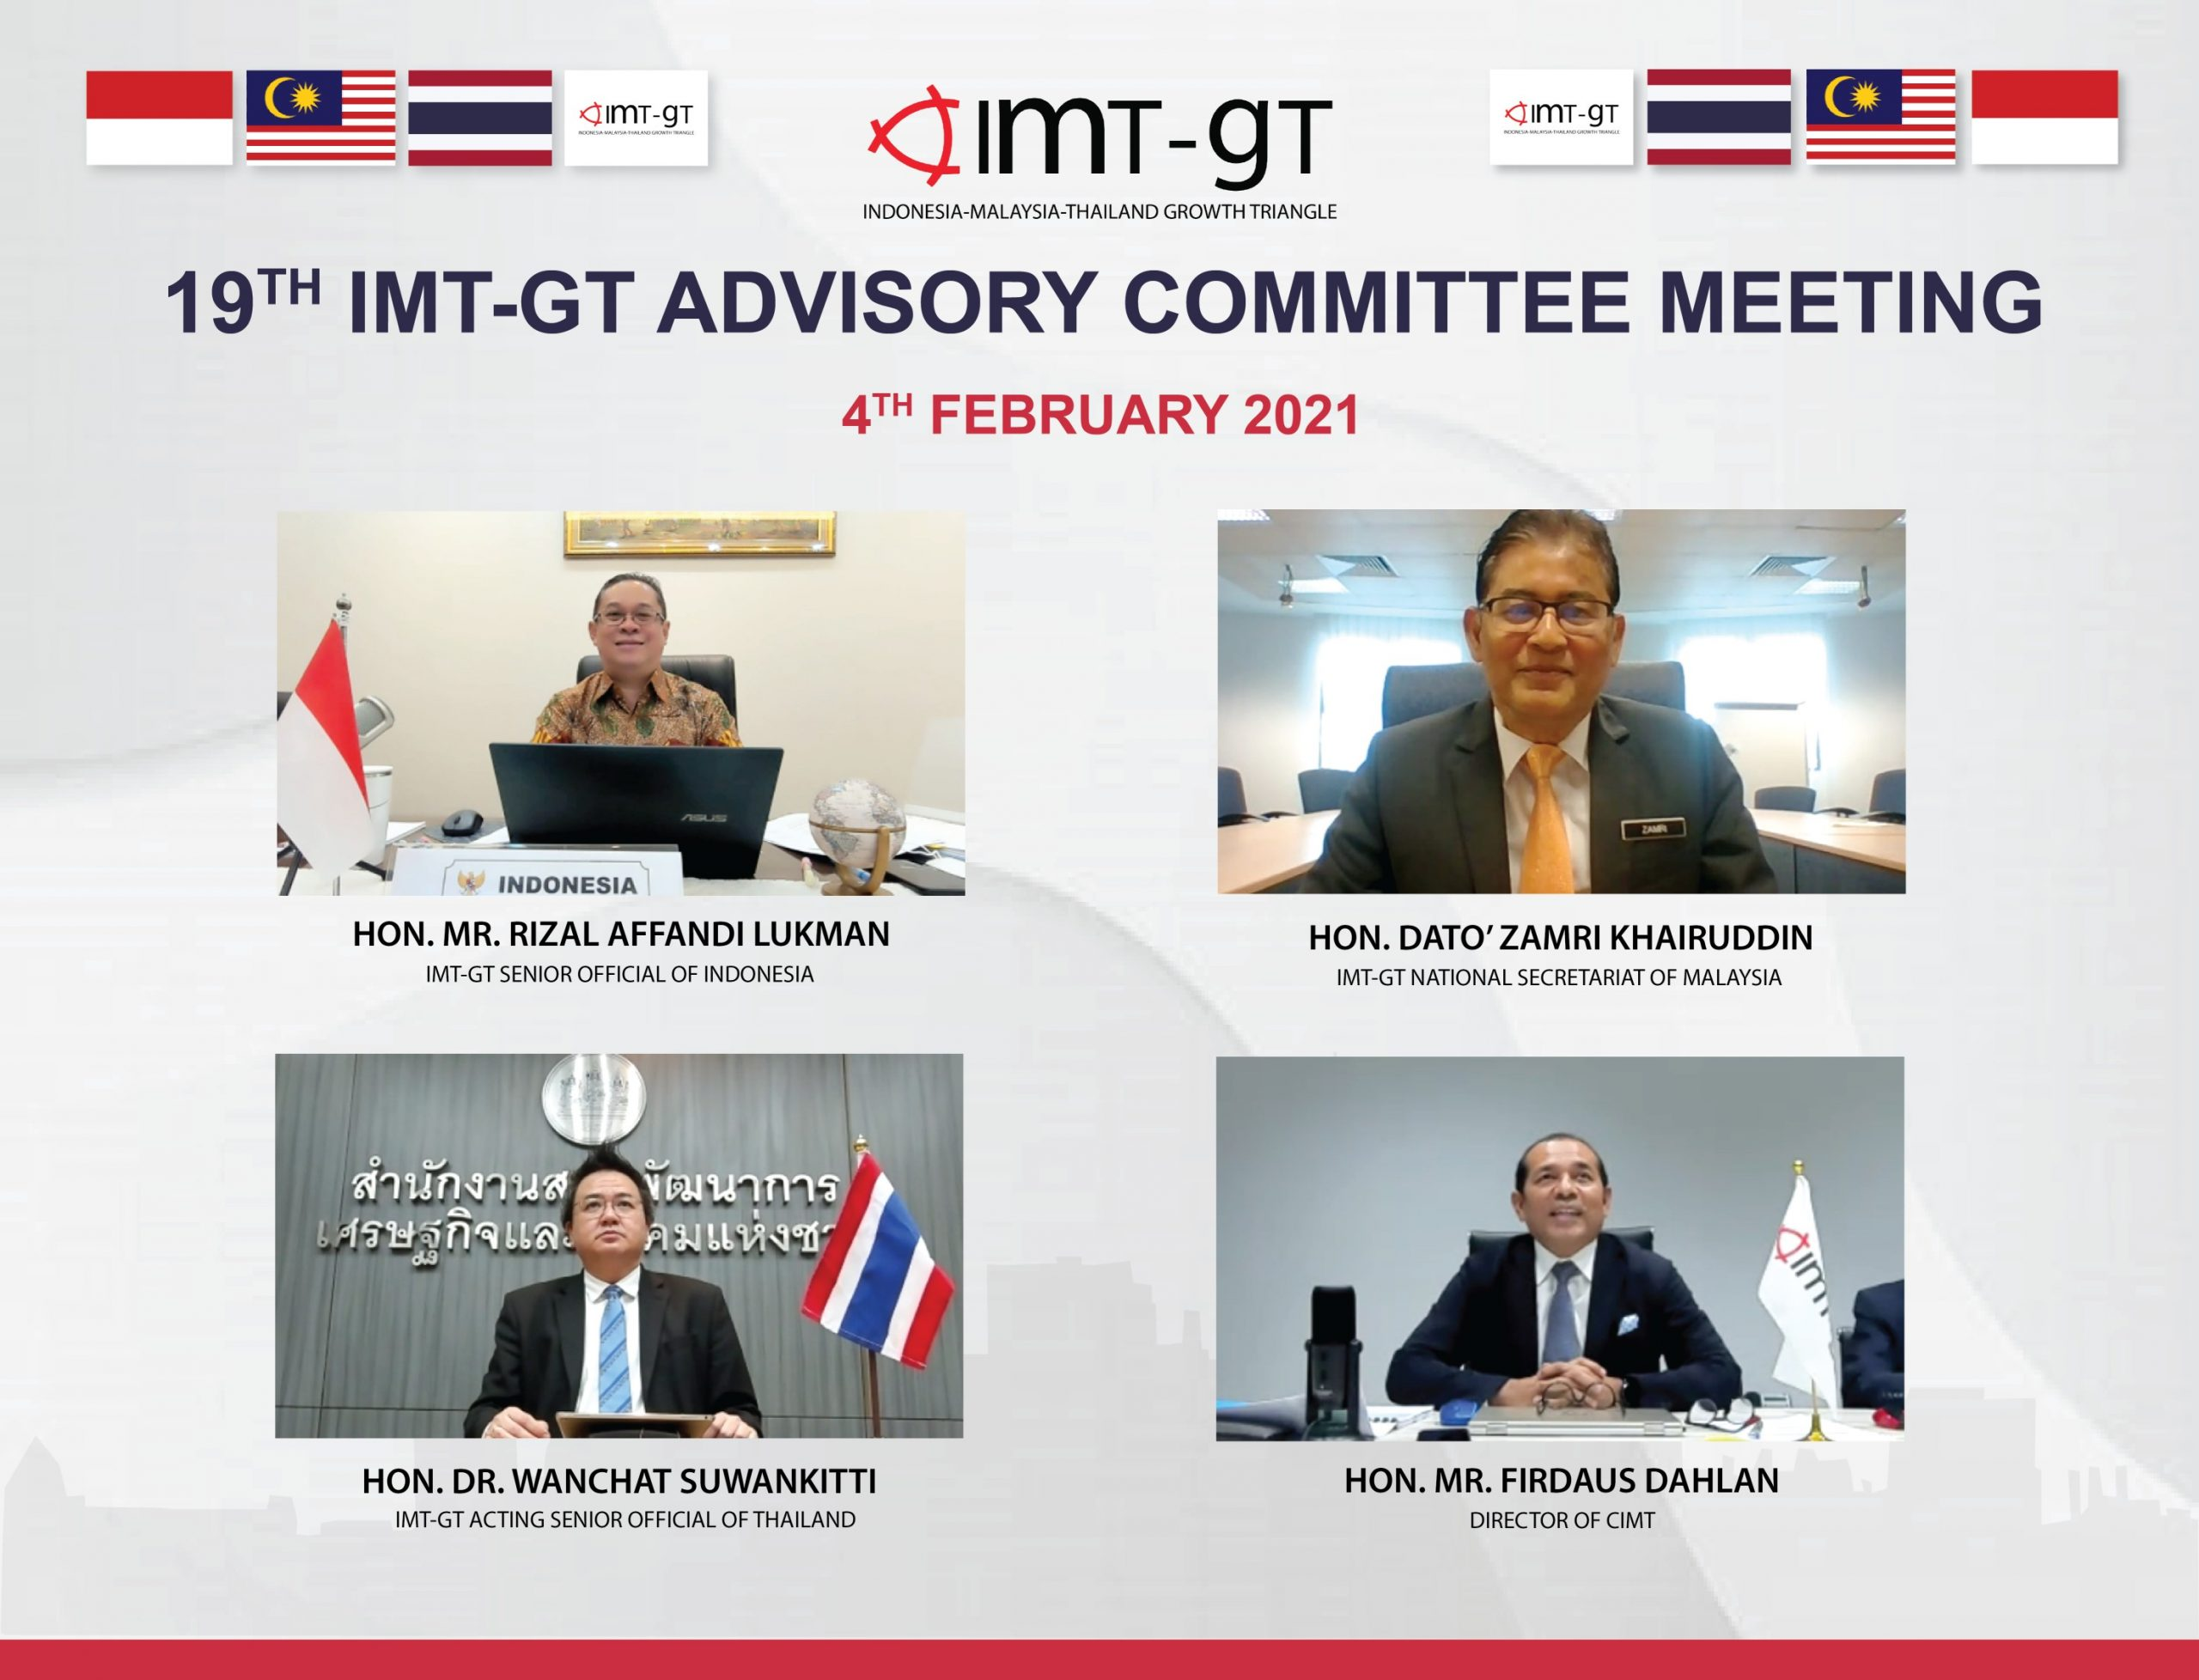 19TH IMT-GT ADVISORY COMMITTEE MEETING